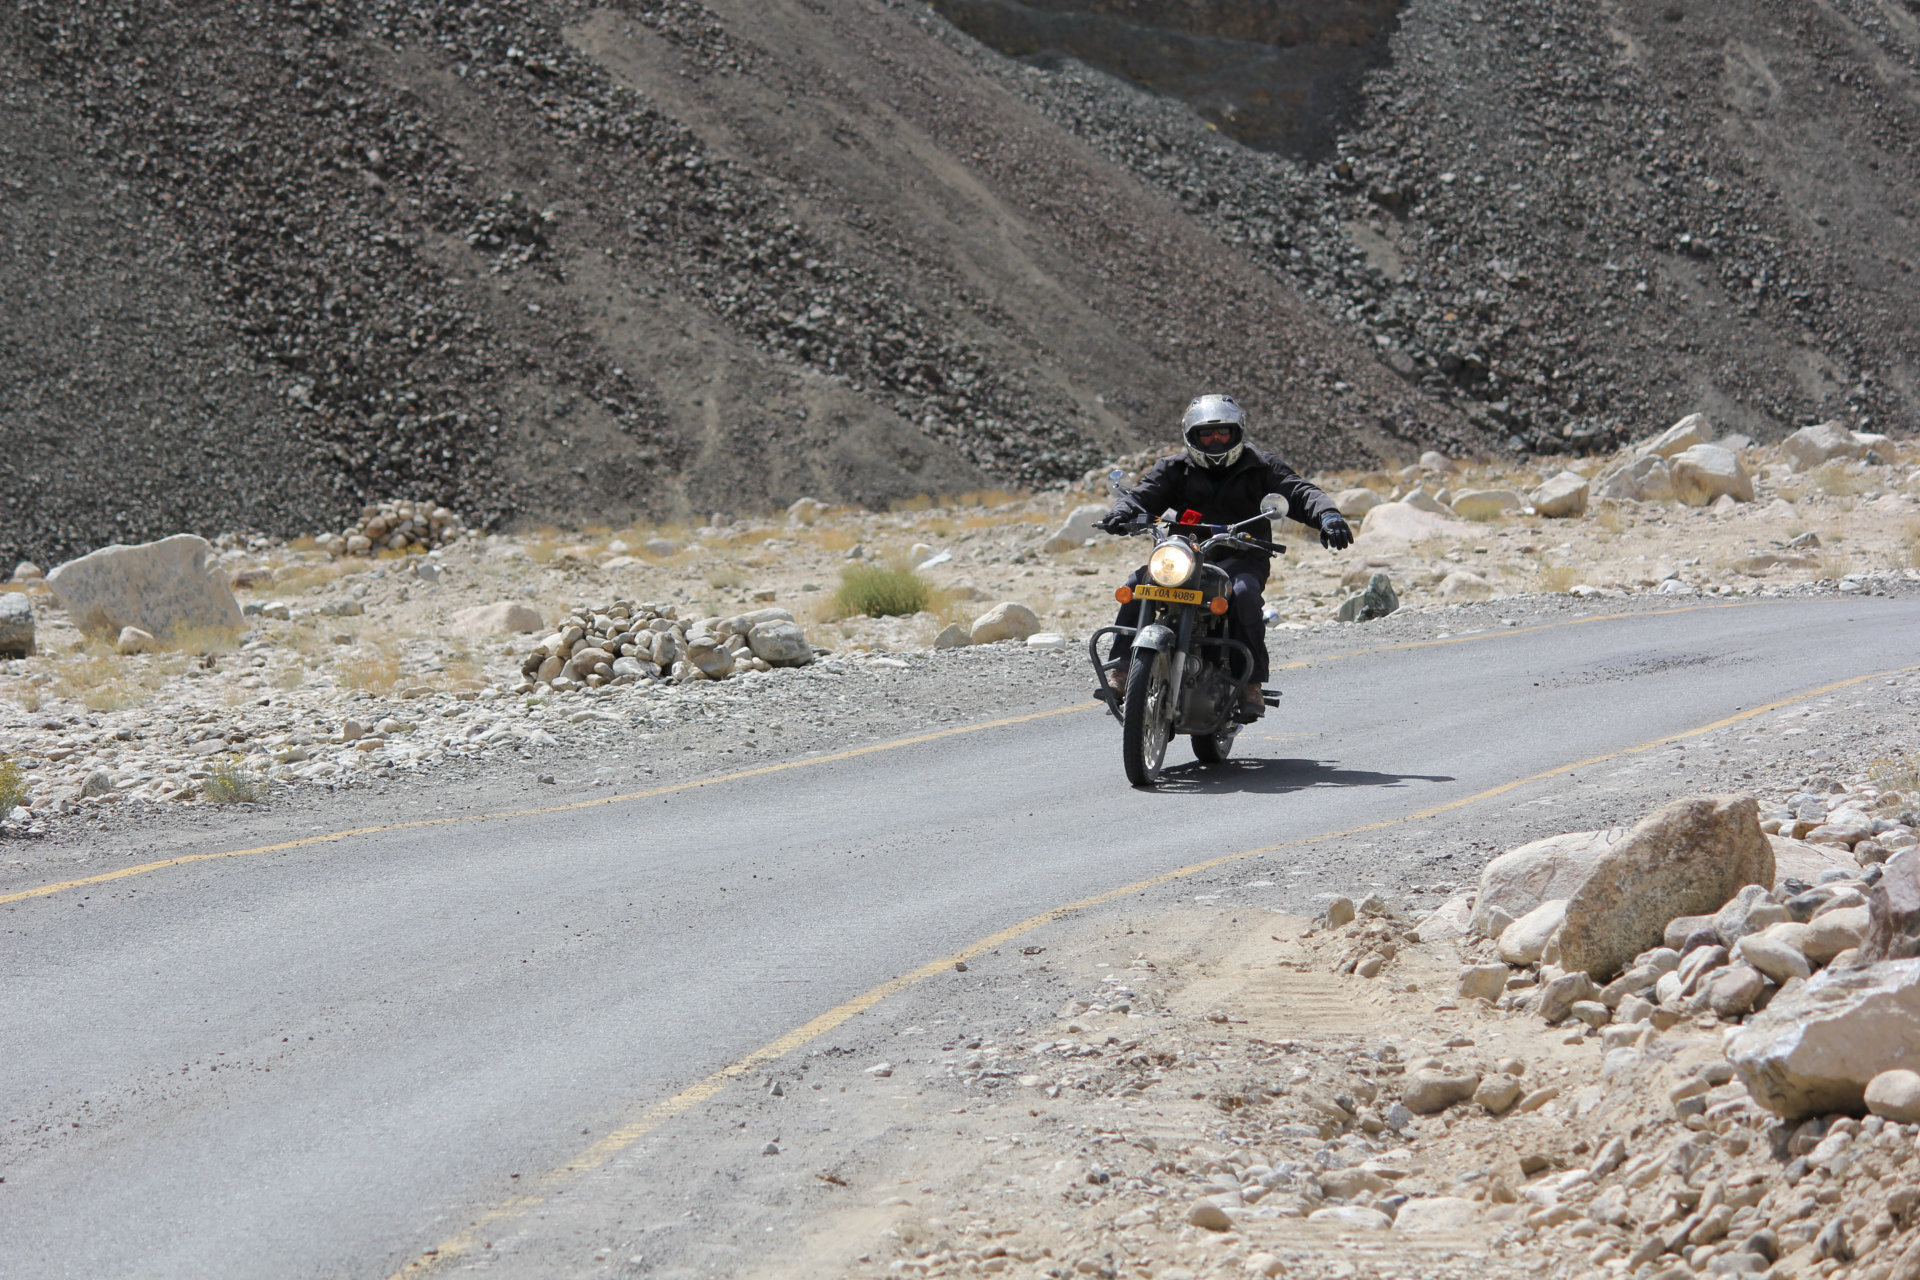 Ladakh travel guide | Information for motorcycle riders